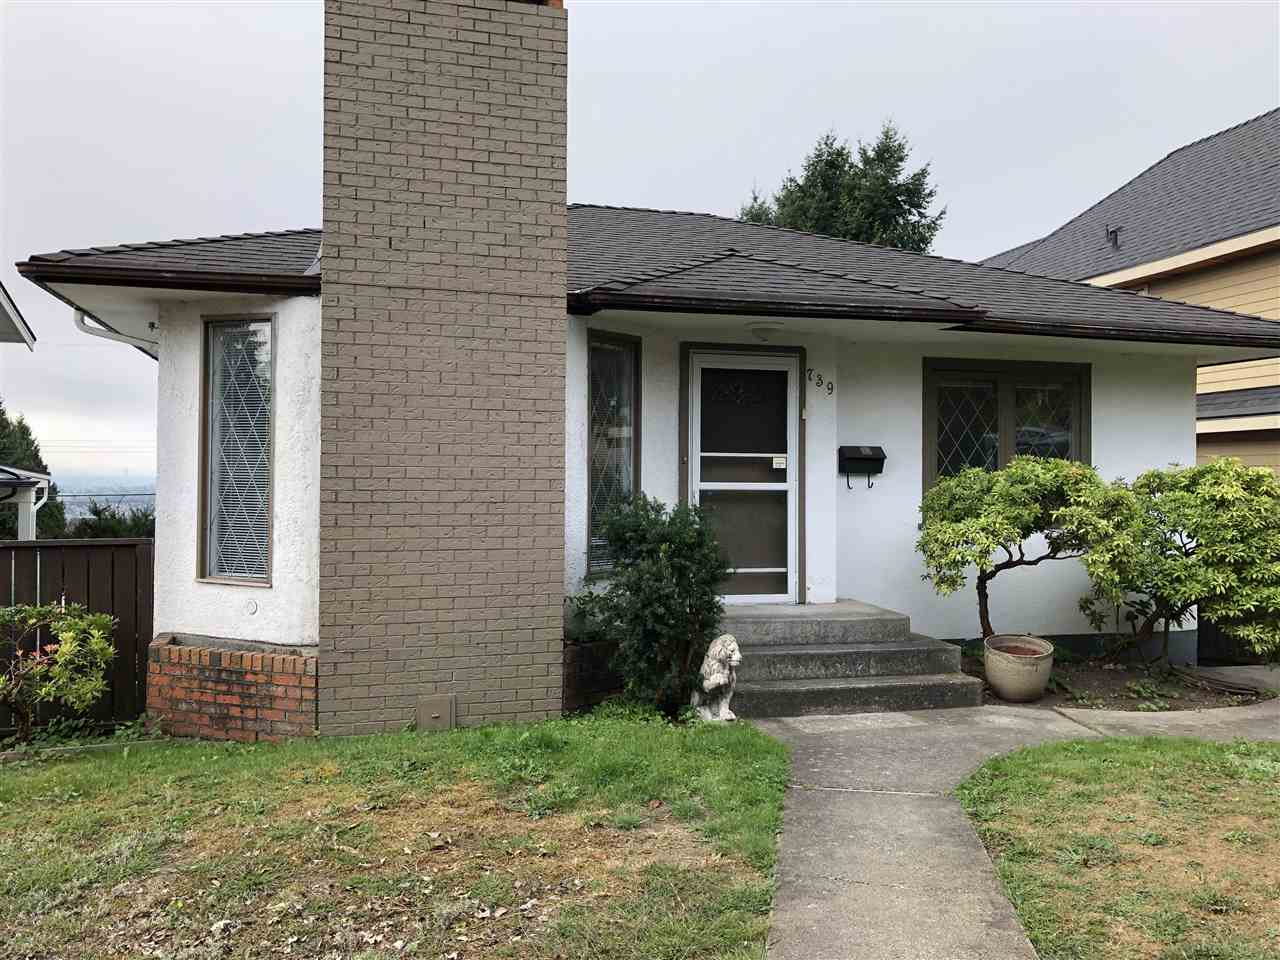 739 E KEITH ROAD - Queensbury House/Single Family for sale, 6 Bedrooms (R2518853) - #8